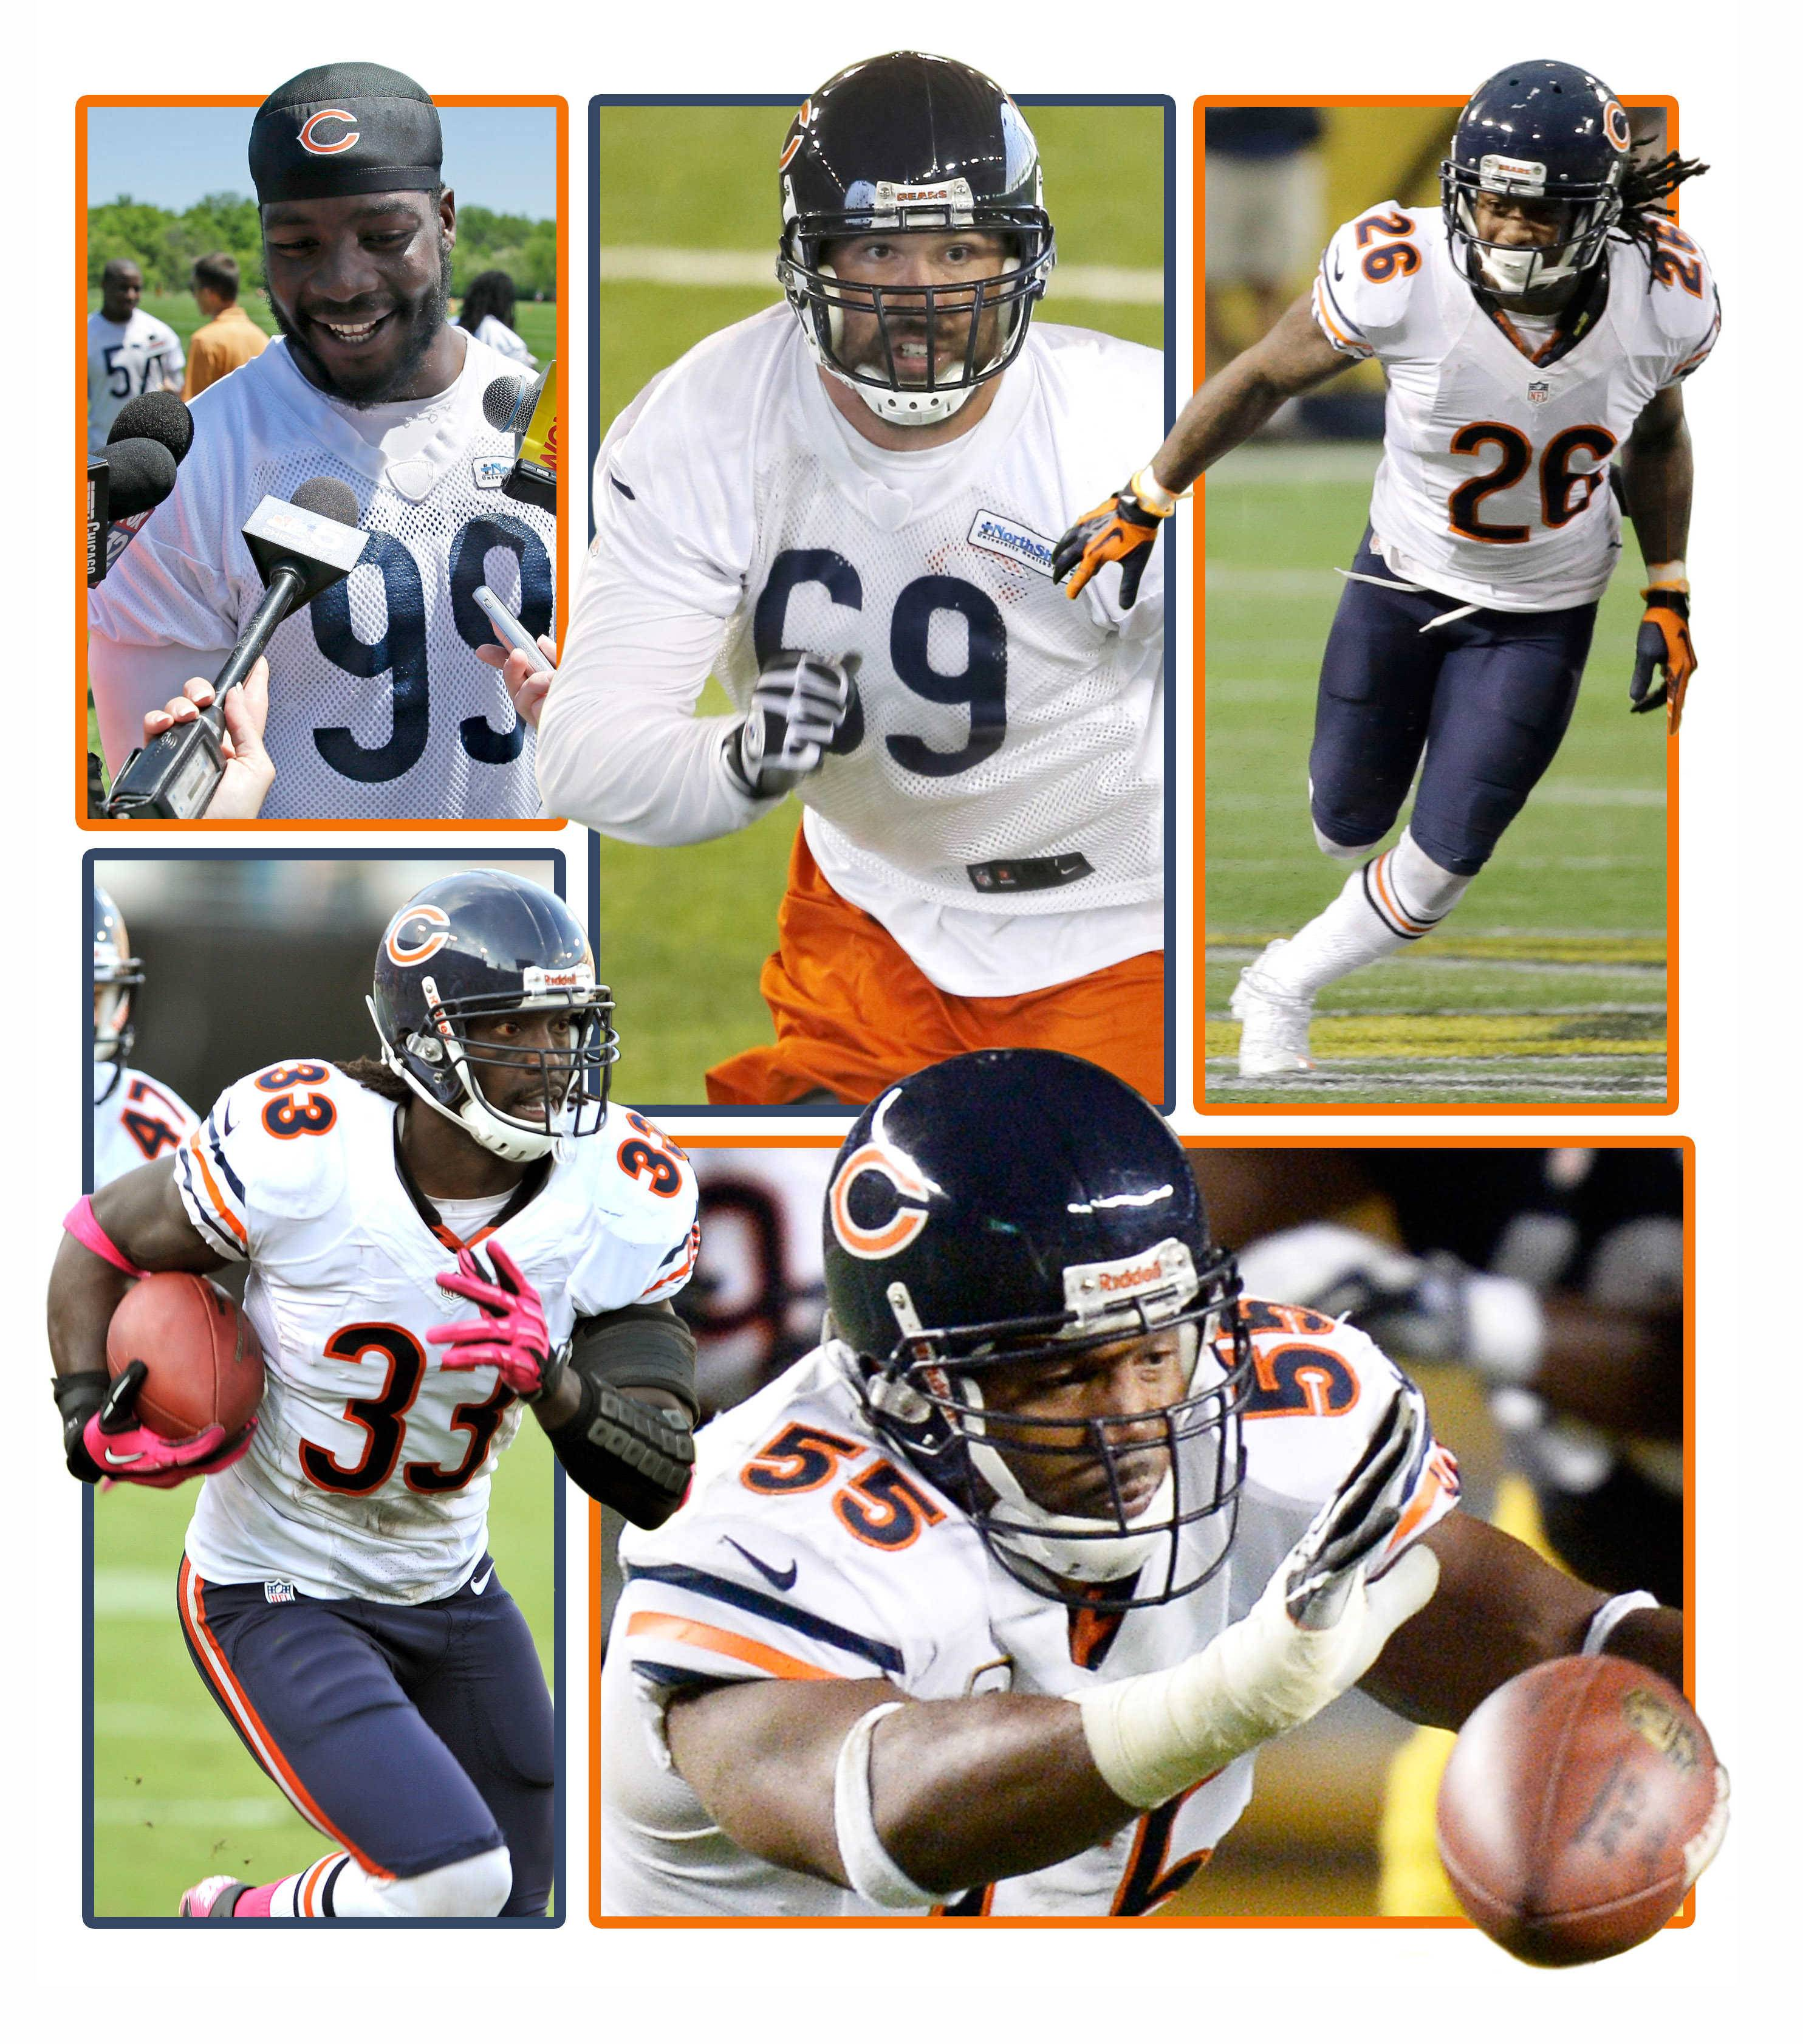 The Bears defense will be a mix of new faces and familiar this season. Clockwise from upper left, Lamarr Houston, Jared Allen, Tim Jennings, Lance Briggs, and Charles Tillman are some key the players for the Bears.